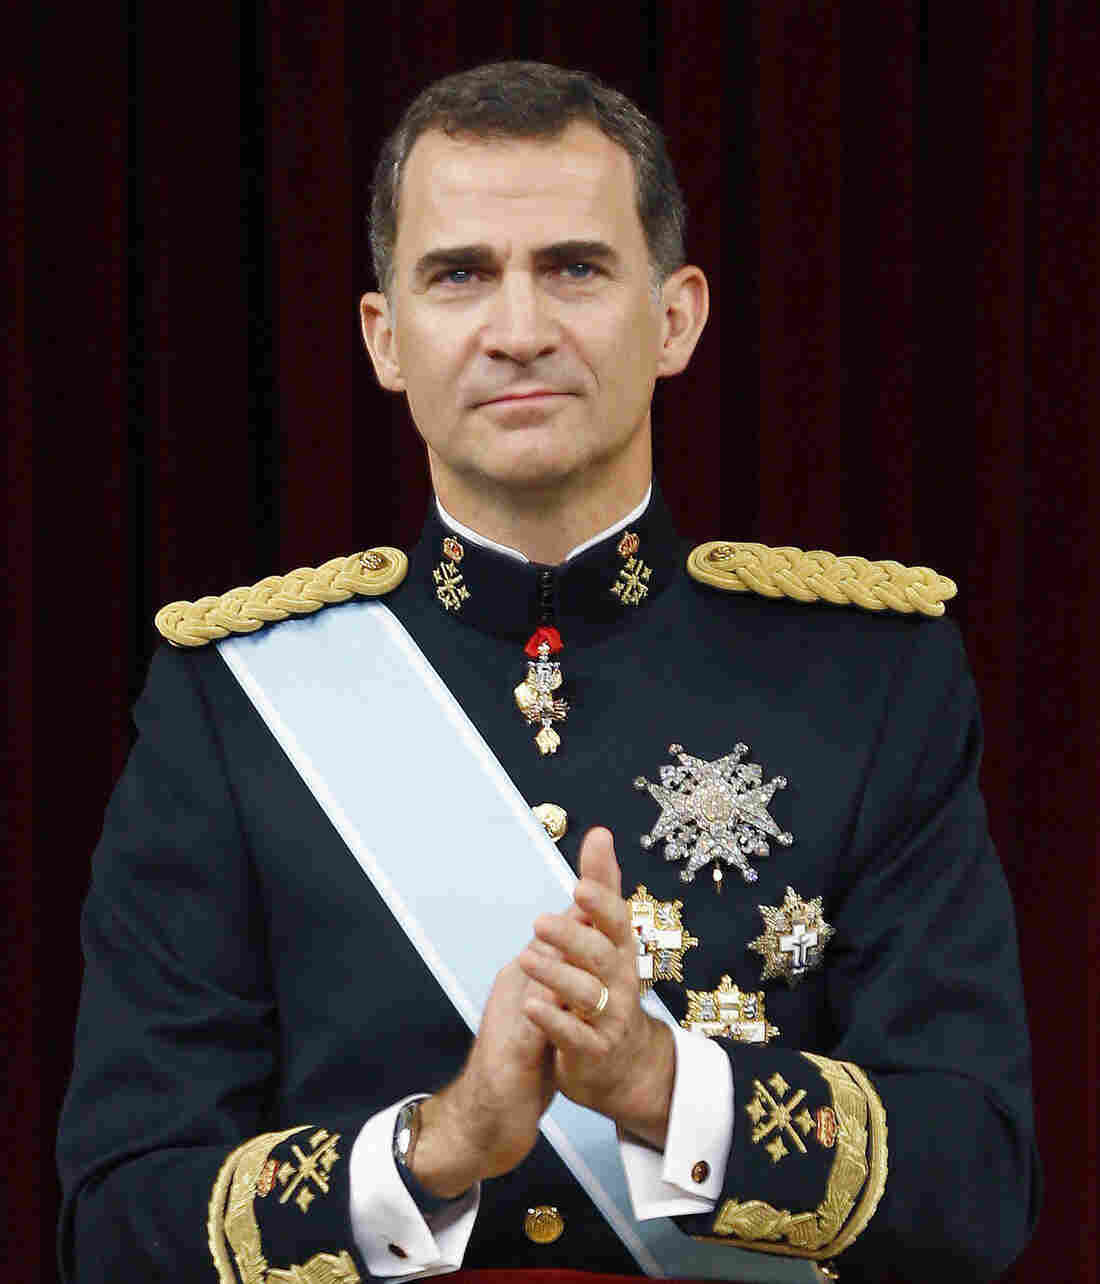 King Felipe VI of Spain attends the Congress of Deputies for the proclamation as King of Spain to the Spanish Parliament on June 19.